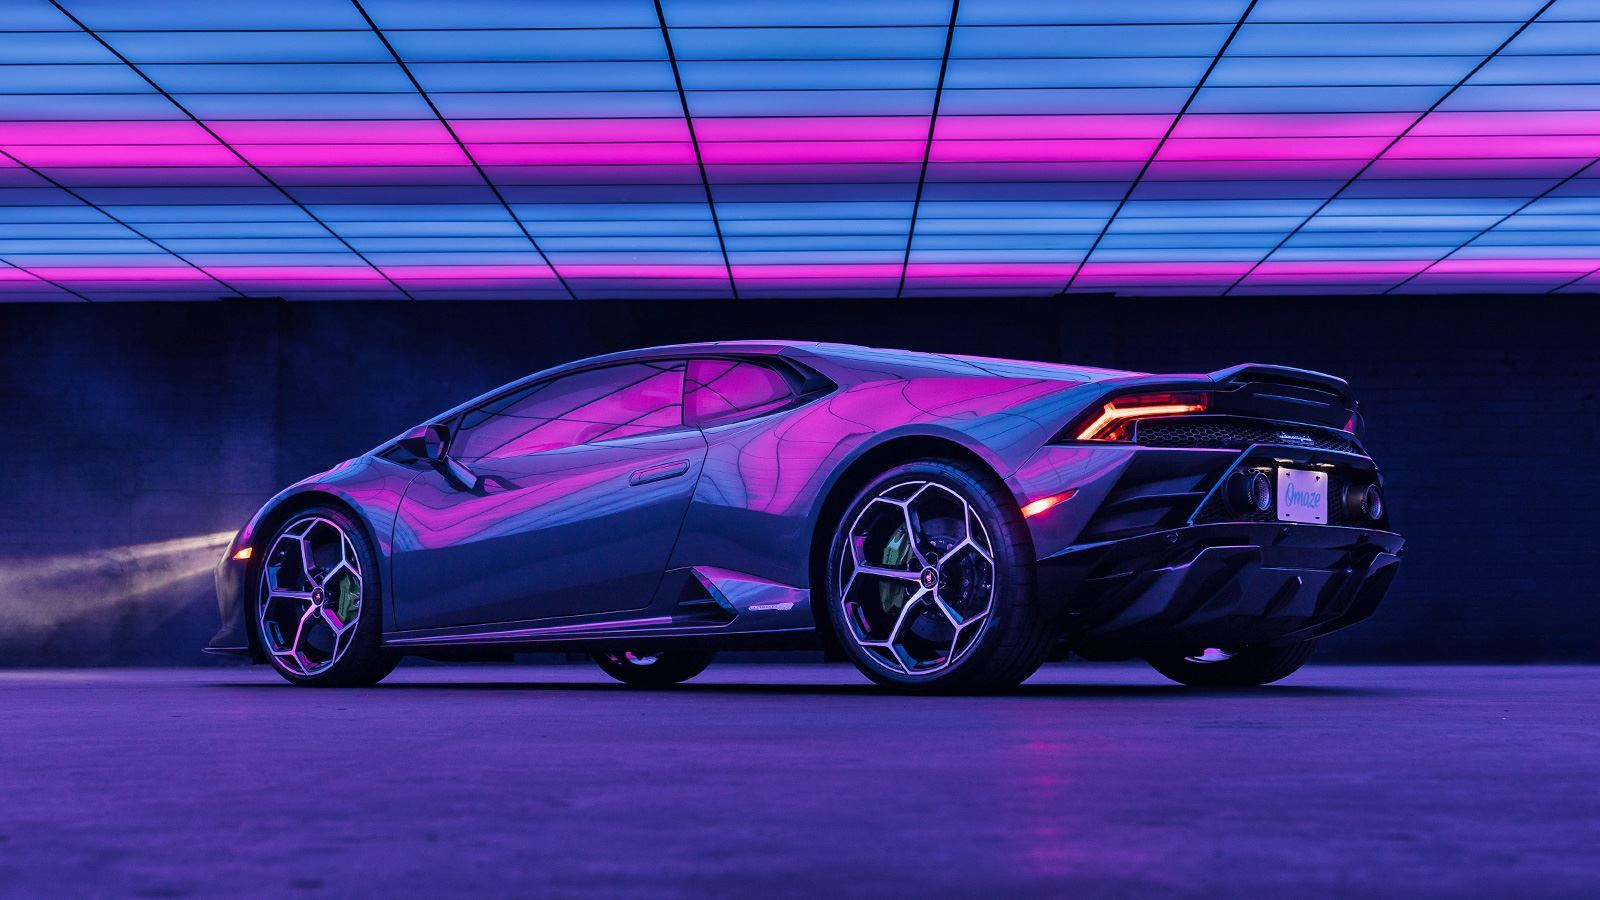 Automobili Lamborghini and Lady Gaga team up for charity sweepstake to support communities disproportionately impacted by the pandemic - Image 7